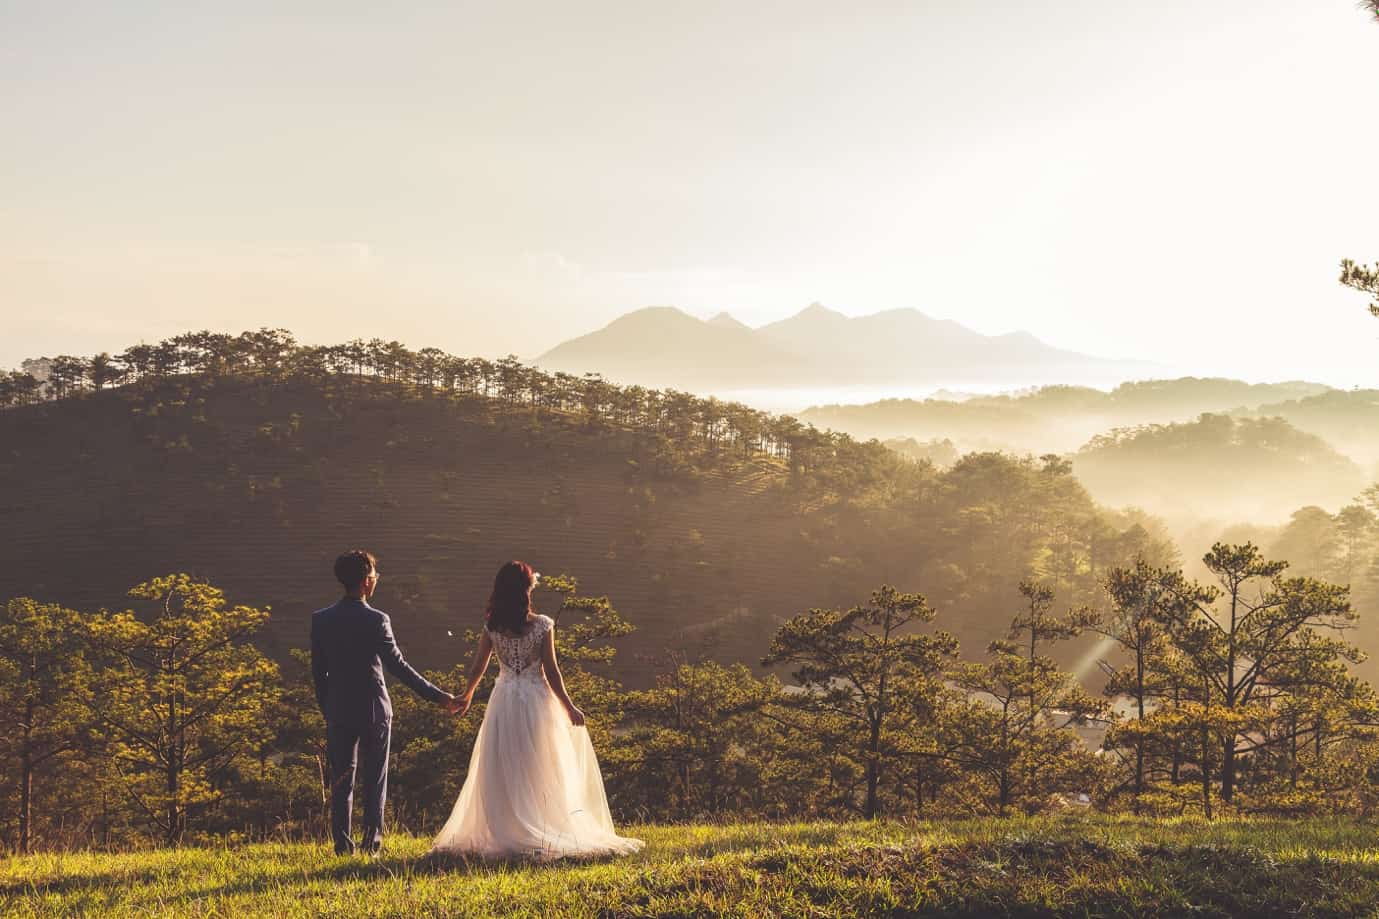 A person and person holding hands and walking in a field with trees and mountains in the background Description automatically generated with medium confidence